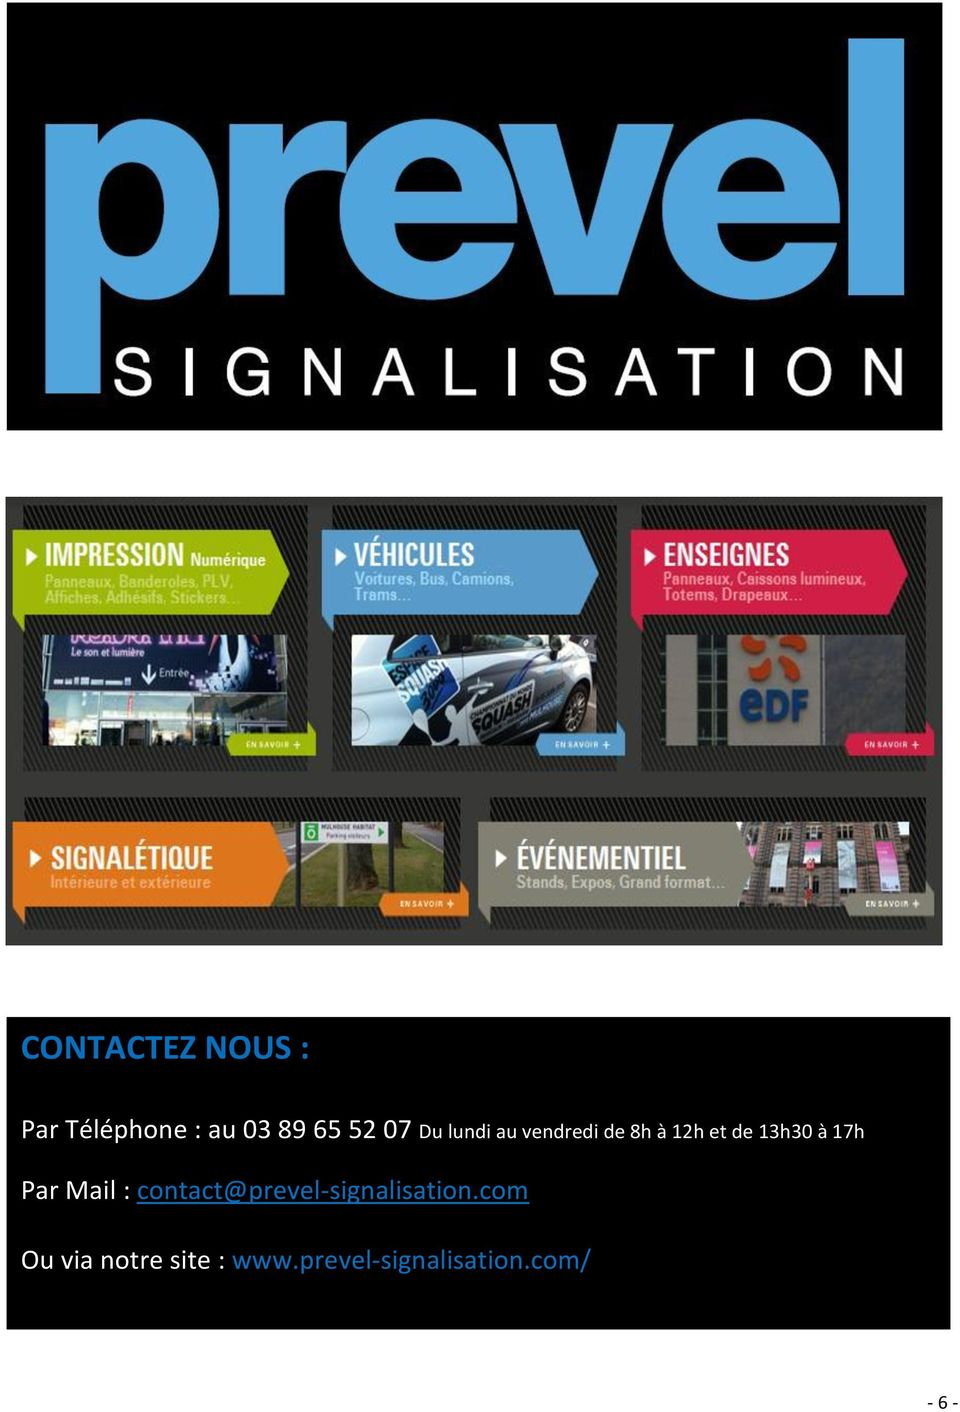 Par Mail : contact@prevel-signalisation.